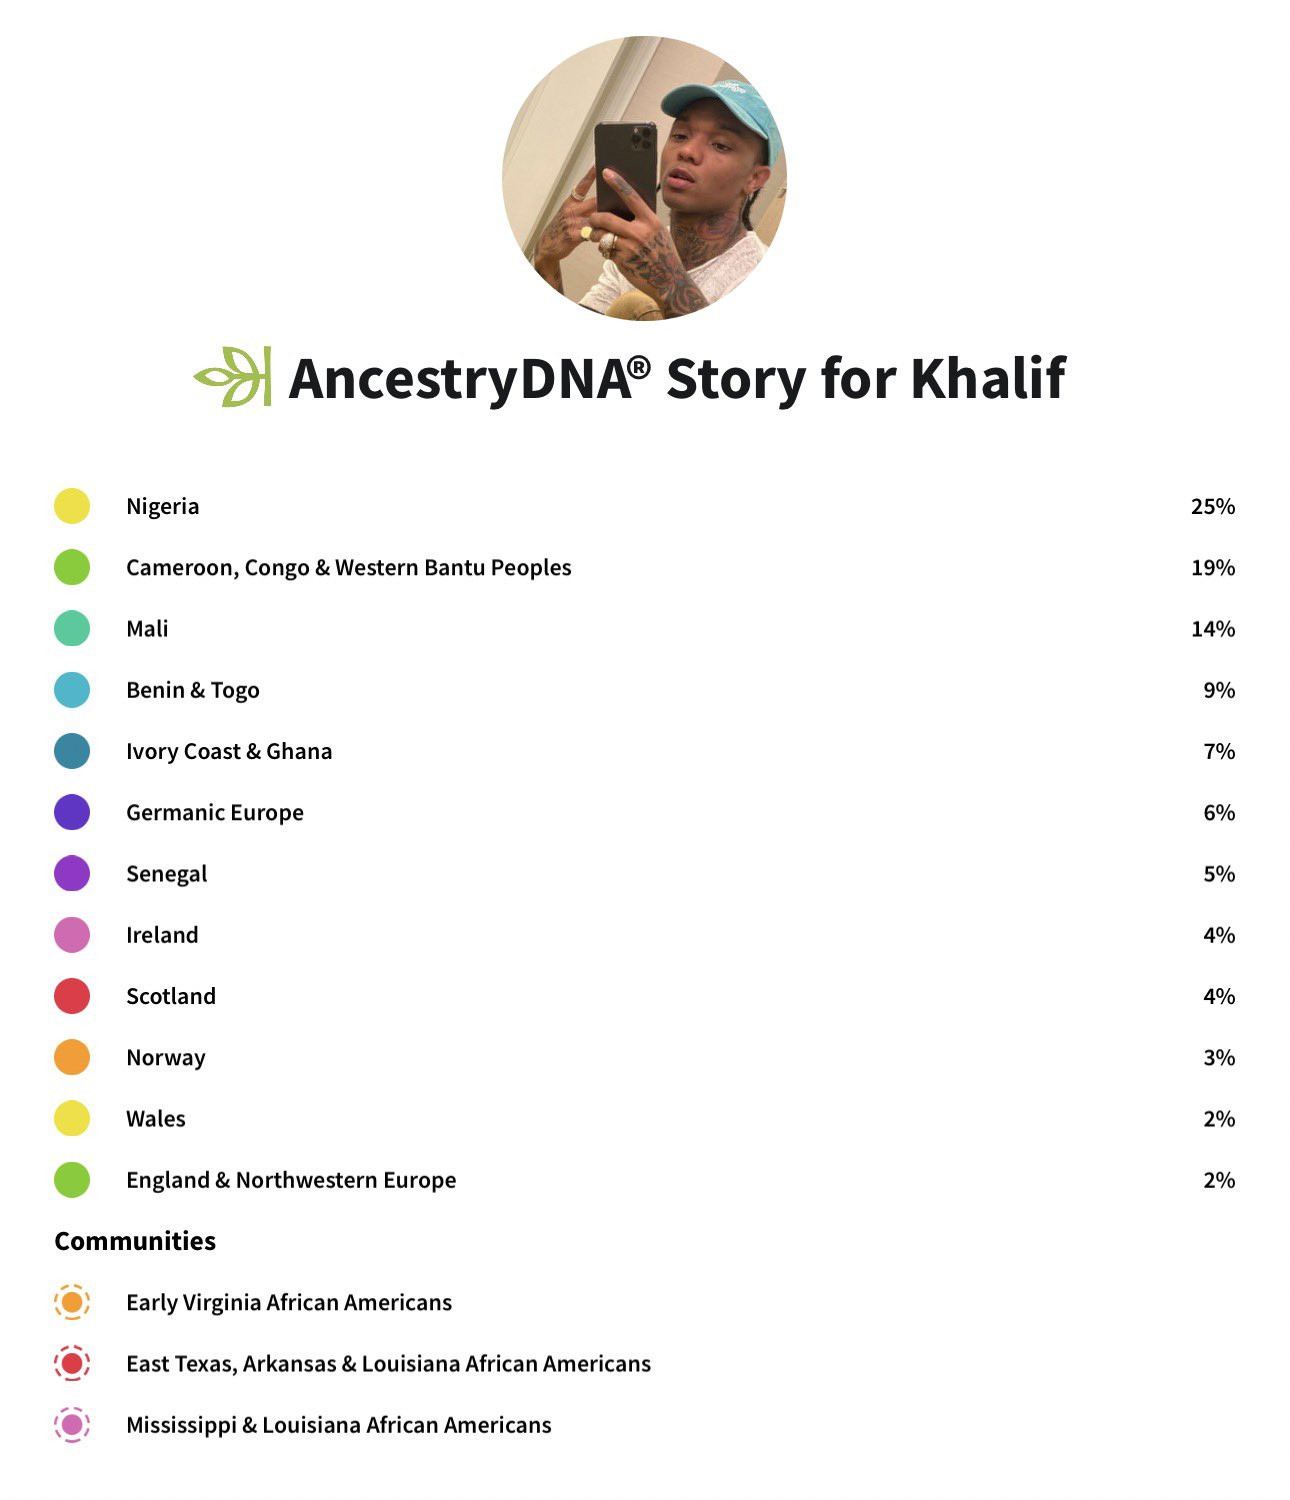 Swae Lee shares photo of his DNA results which confirms link to Nigeria